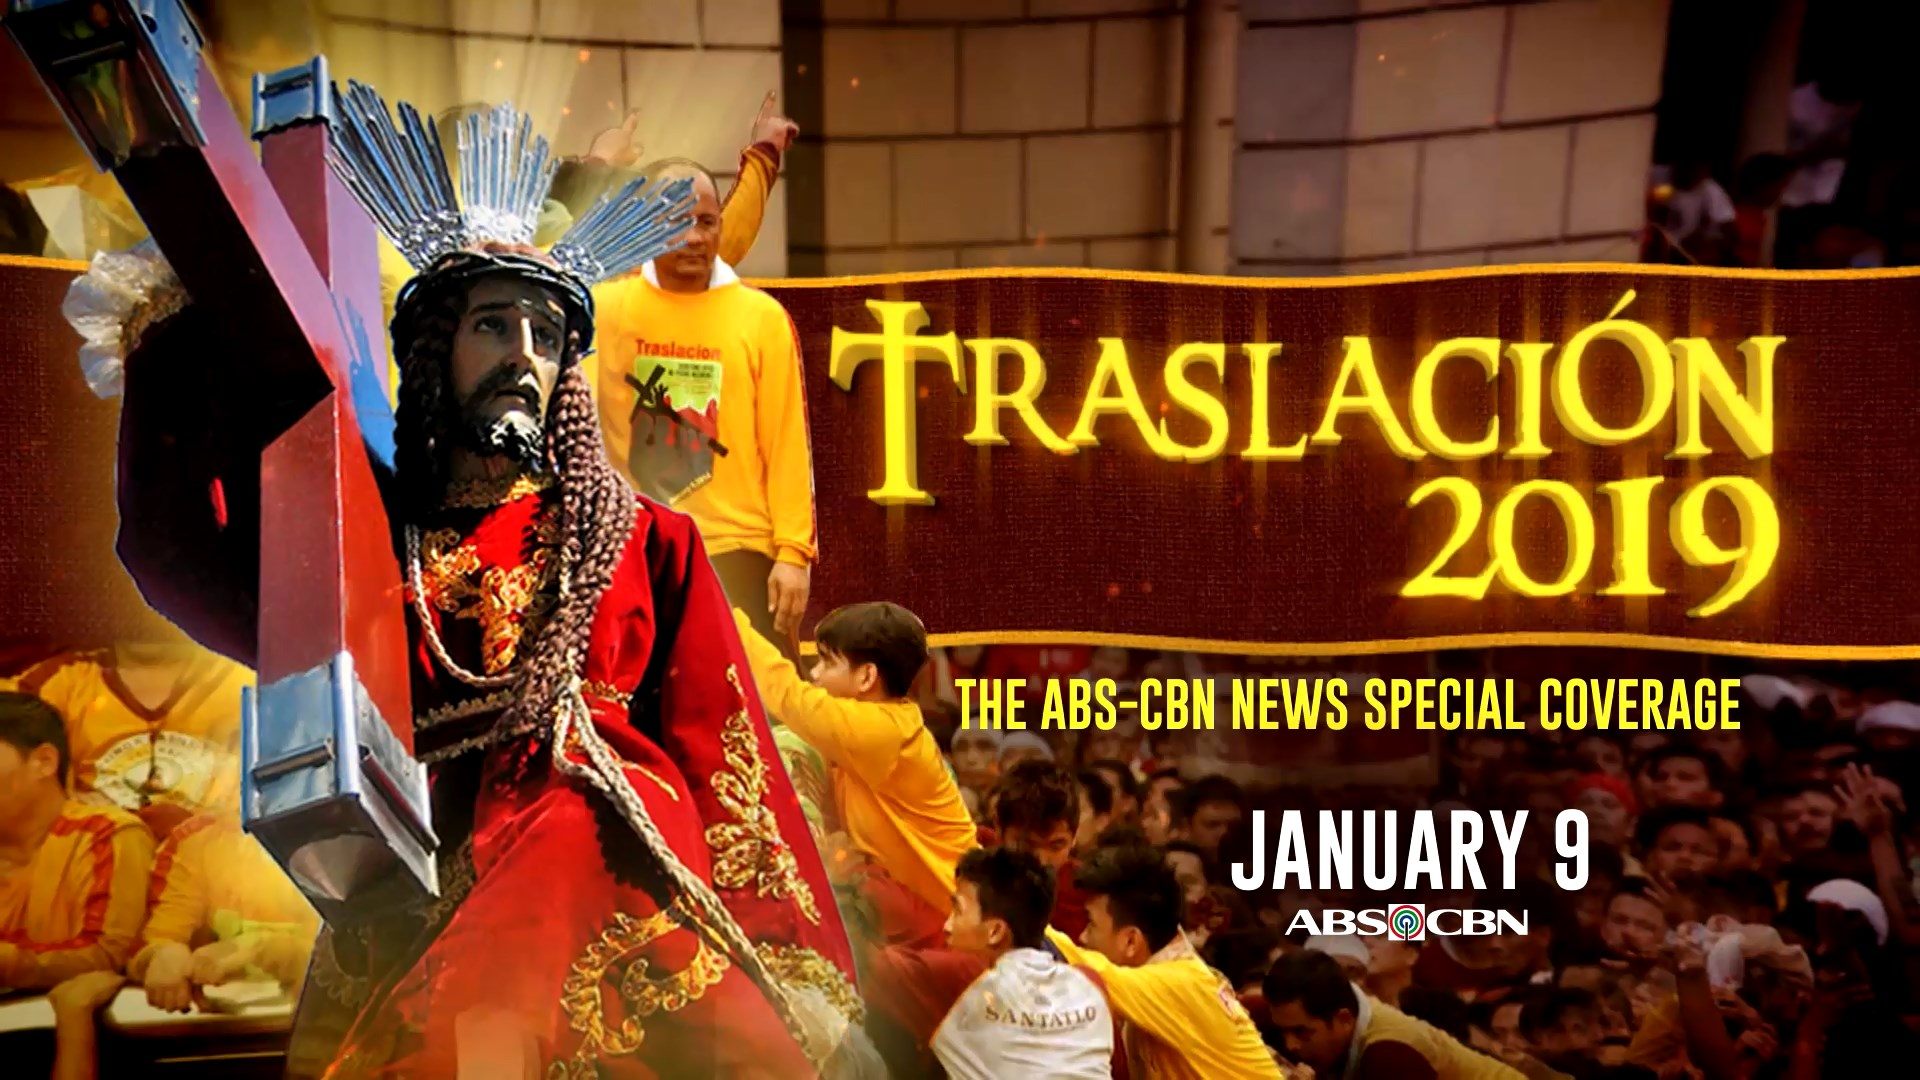 Catch the Trasclacion 2019 coverage of ABS CBN News on radio, TV, and online